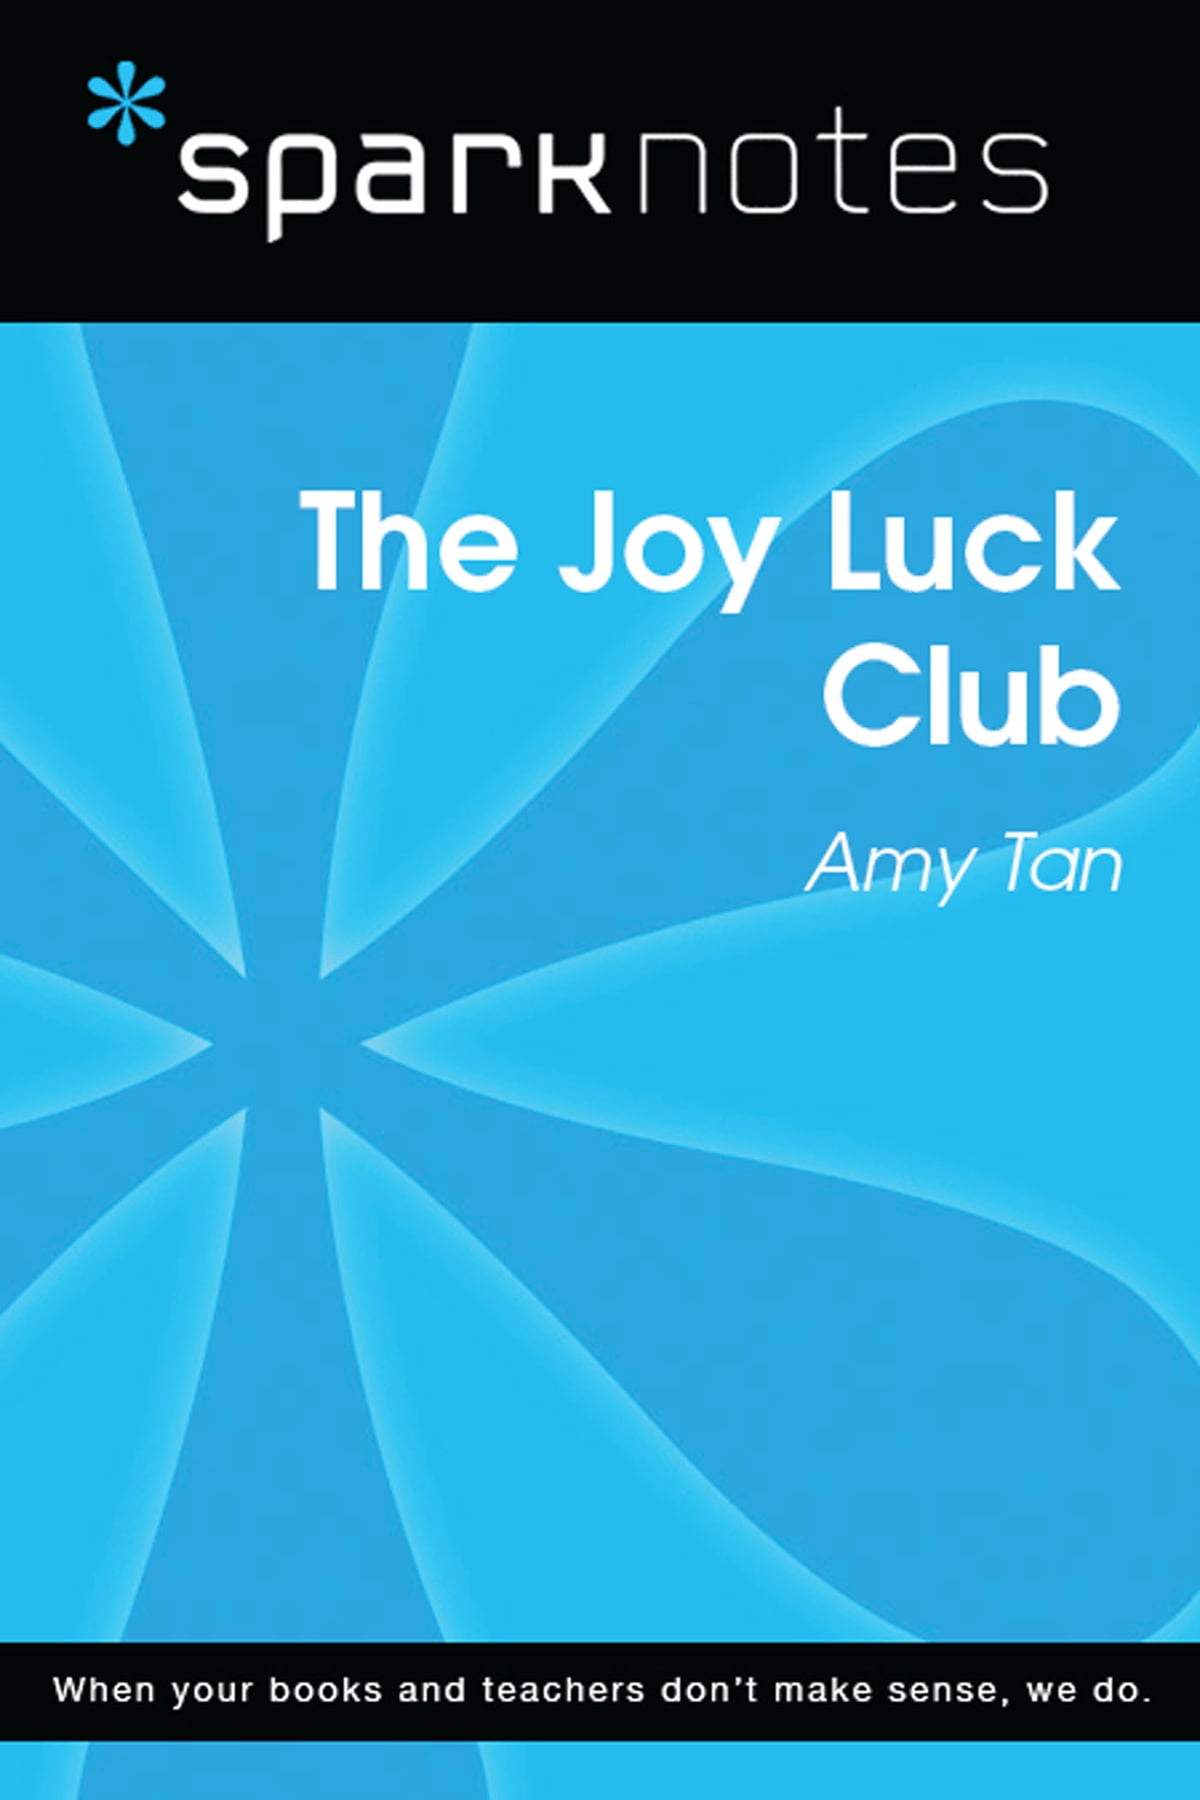 the joy luck club sparknotes literature guide ebook by amy tan the joy luck club sparknotes literature guide ebook by amy tan 9781411476004 rakuten kobo